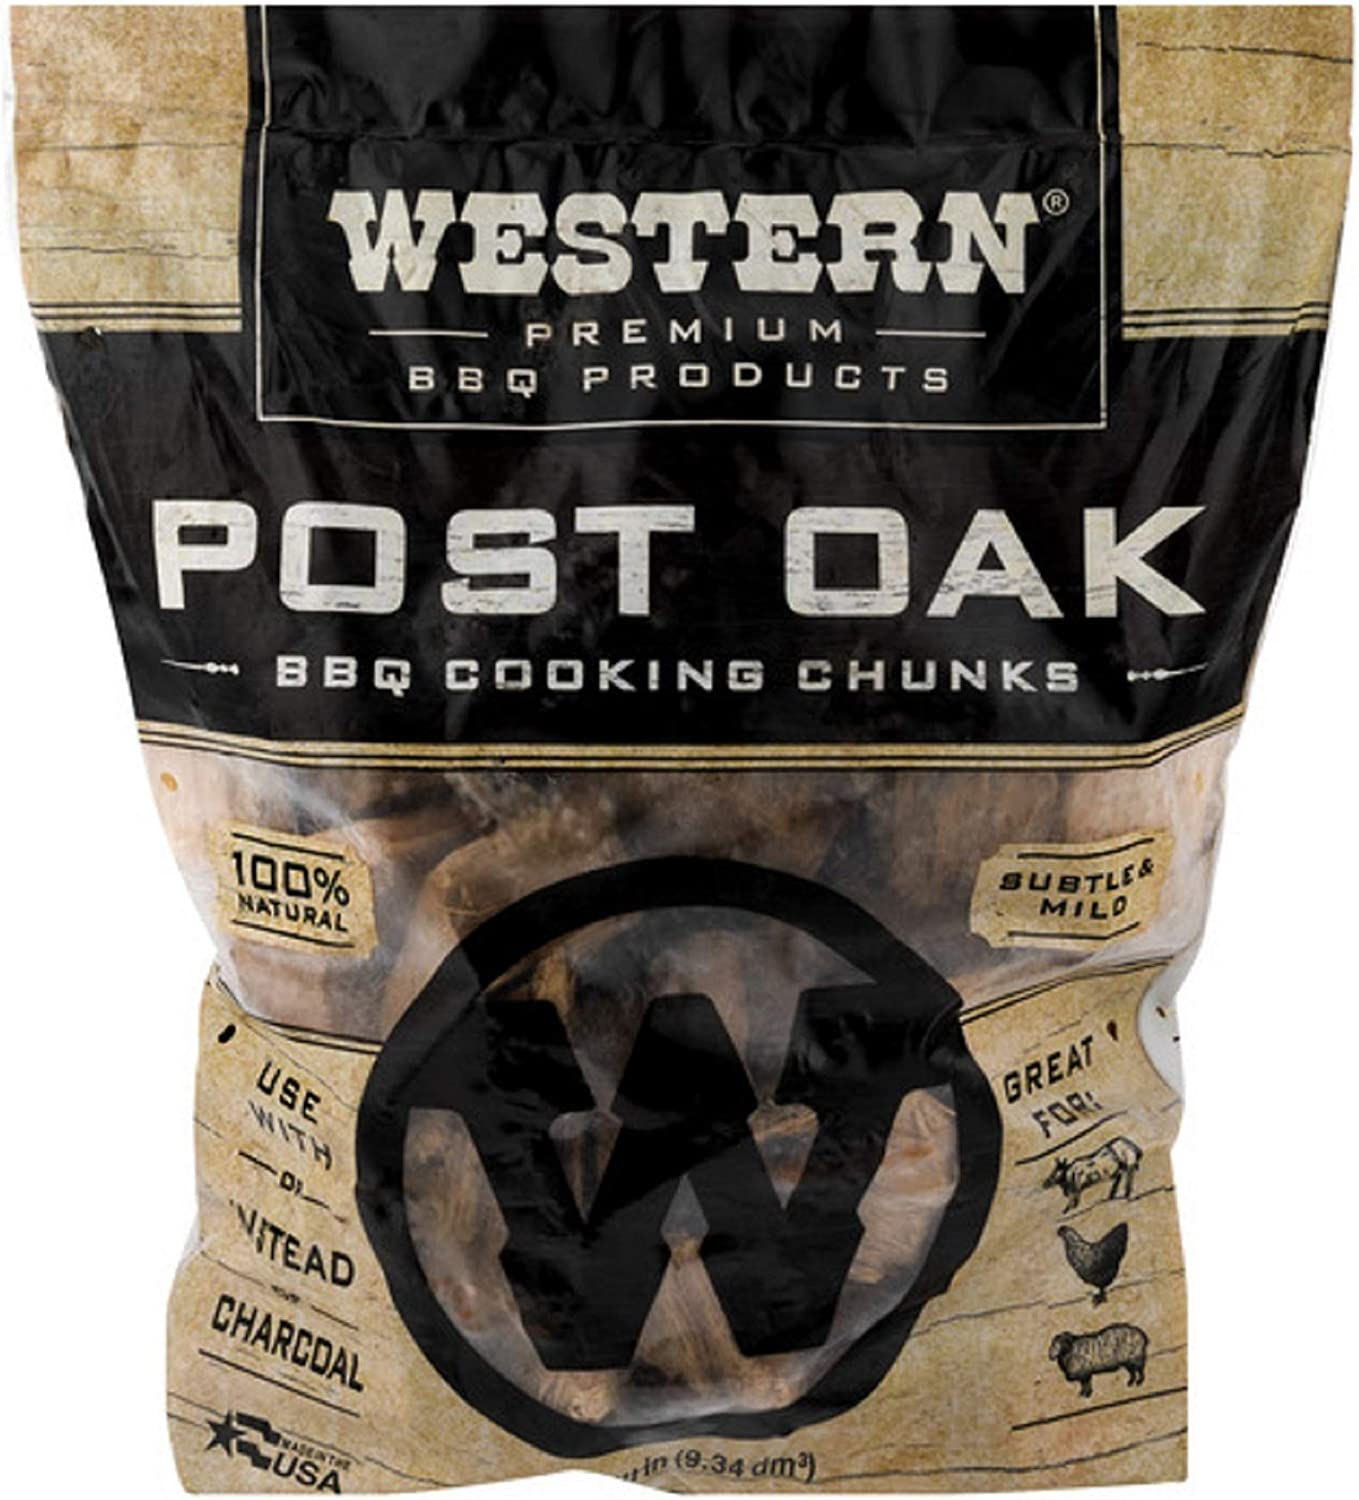 Western Premium BBQ Products Post Oak BBQ Cooking Chunks, 570 cu in : Smoker Chips : Garden & Outdoor